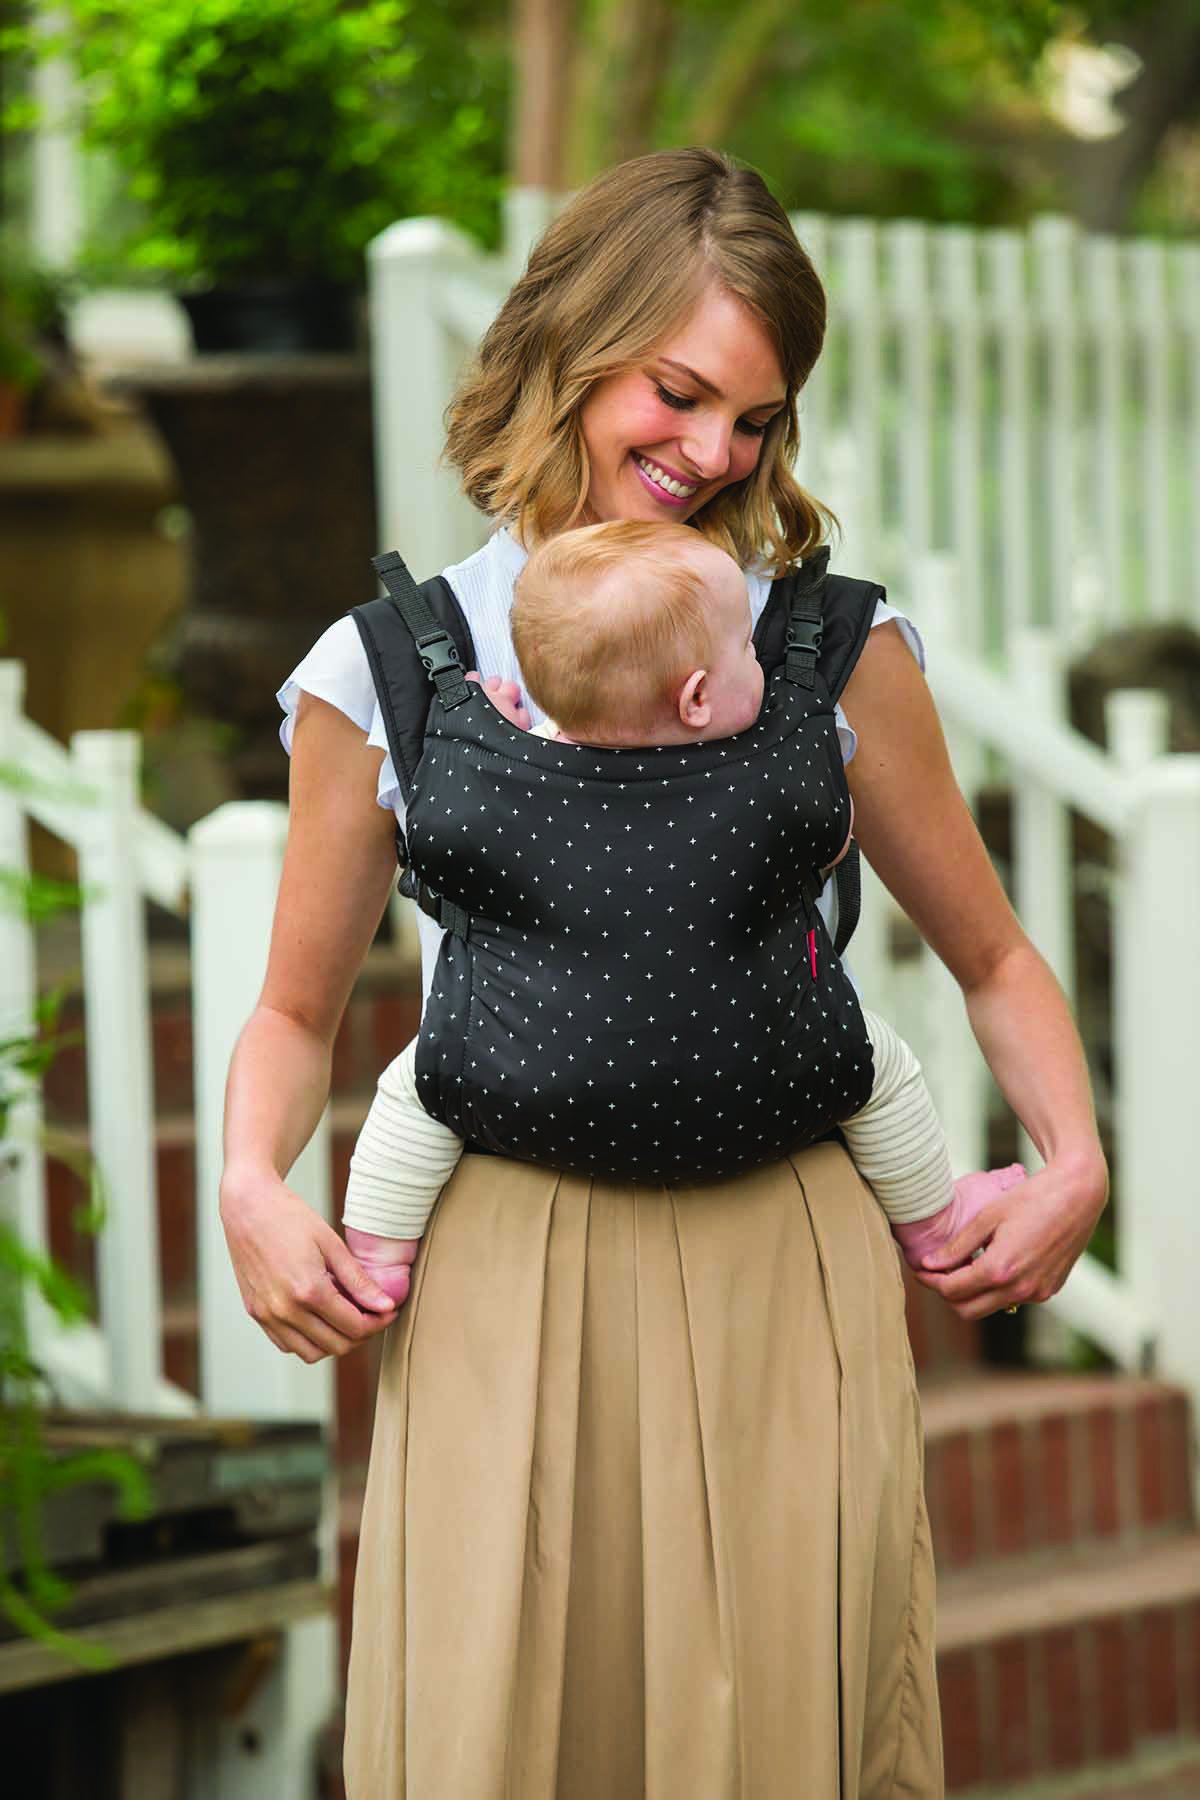 Infantino Zip Ergonomic Baby Travel Carrier, Black Infantino Fully safety tested Travel carrier that unfolds to for safe secure baby wearing Up to 18 kg 3